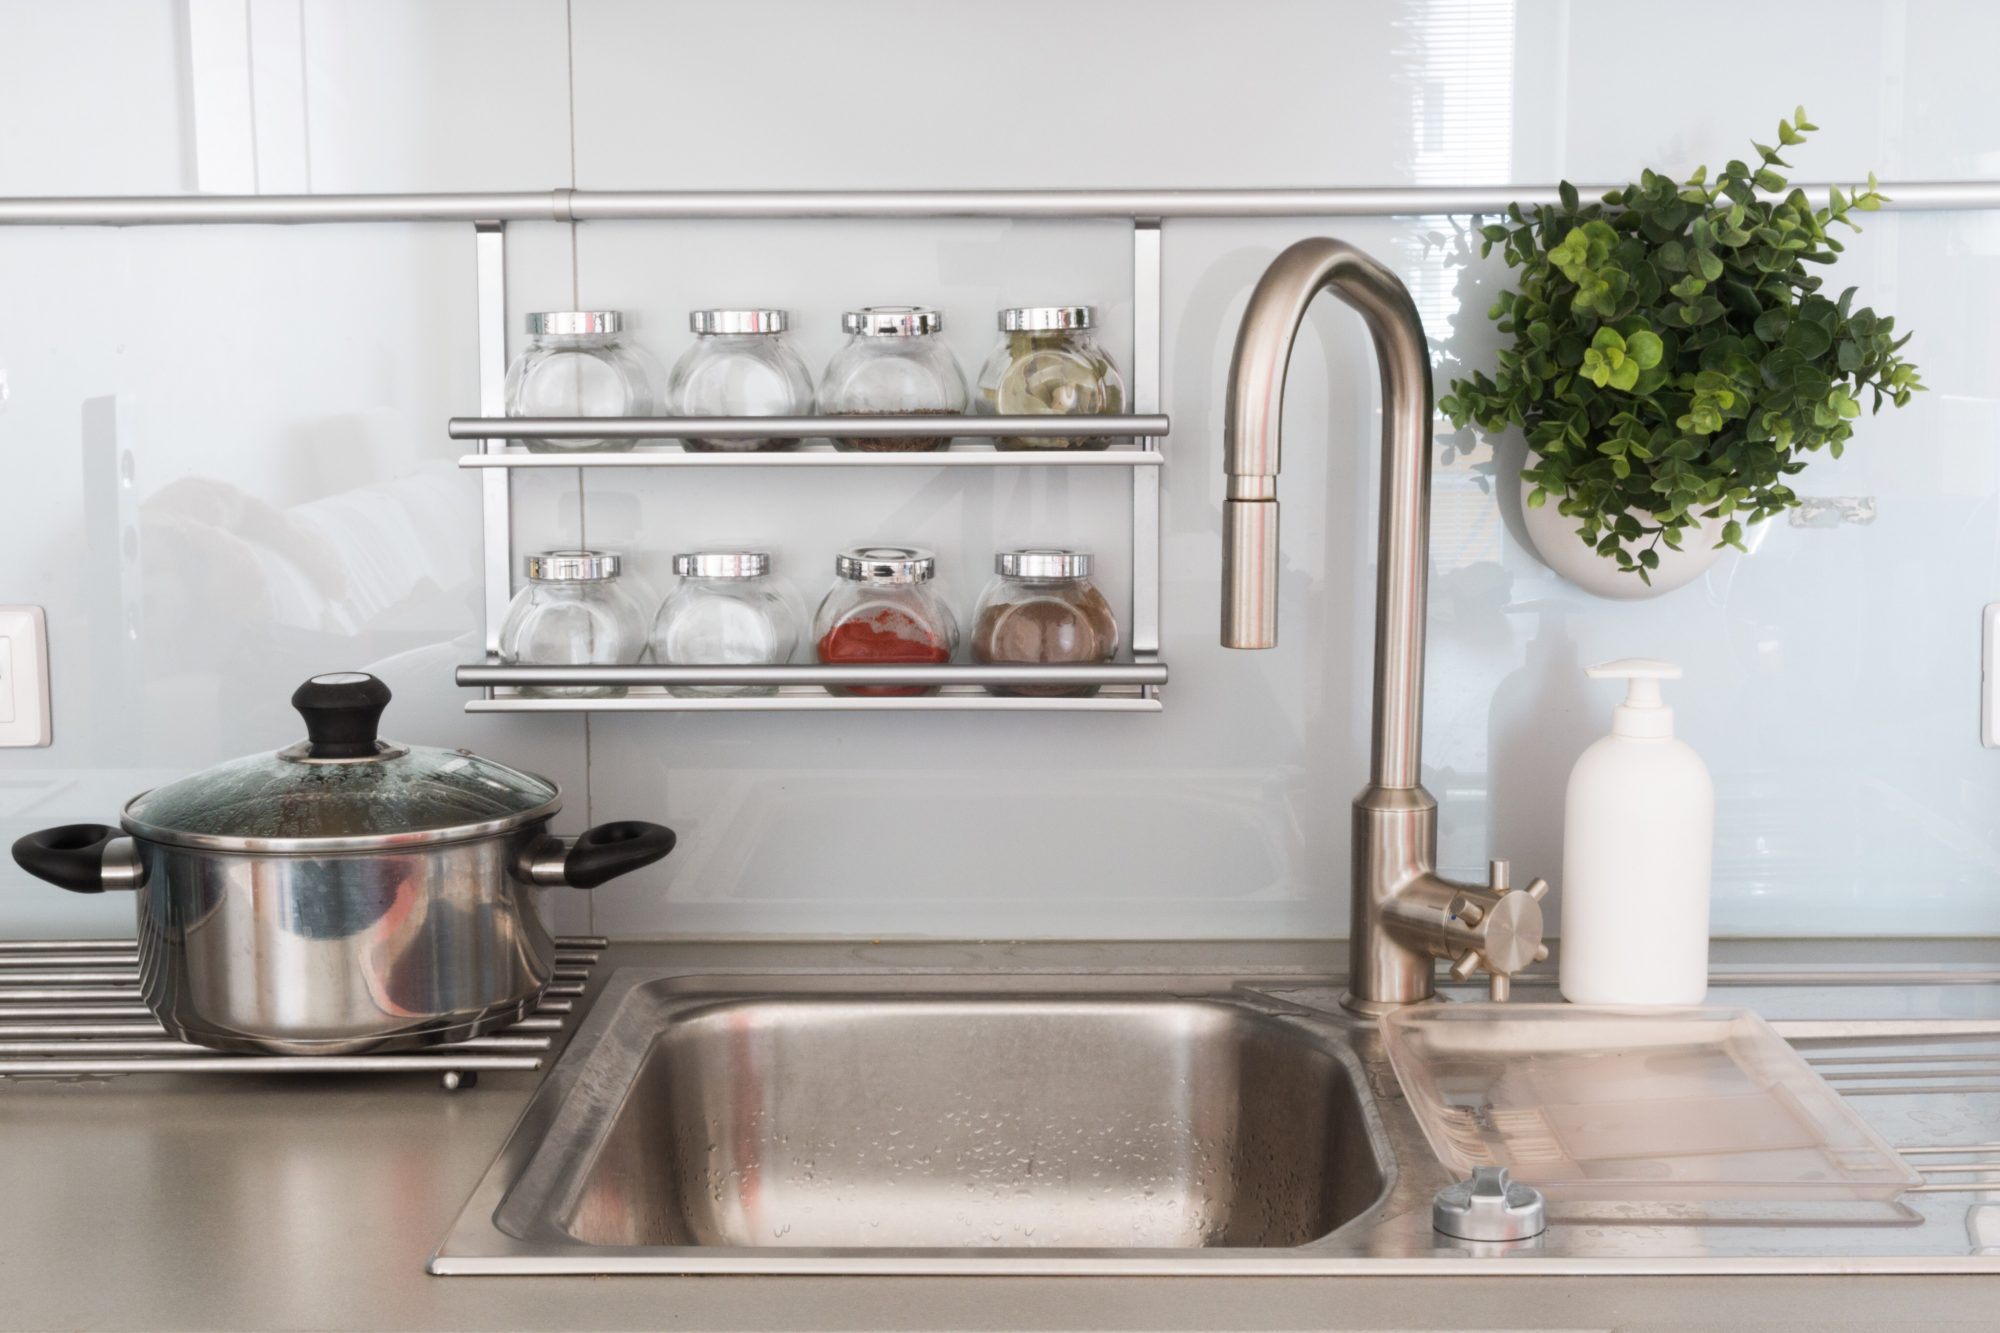 sink with garbage disposal